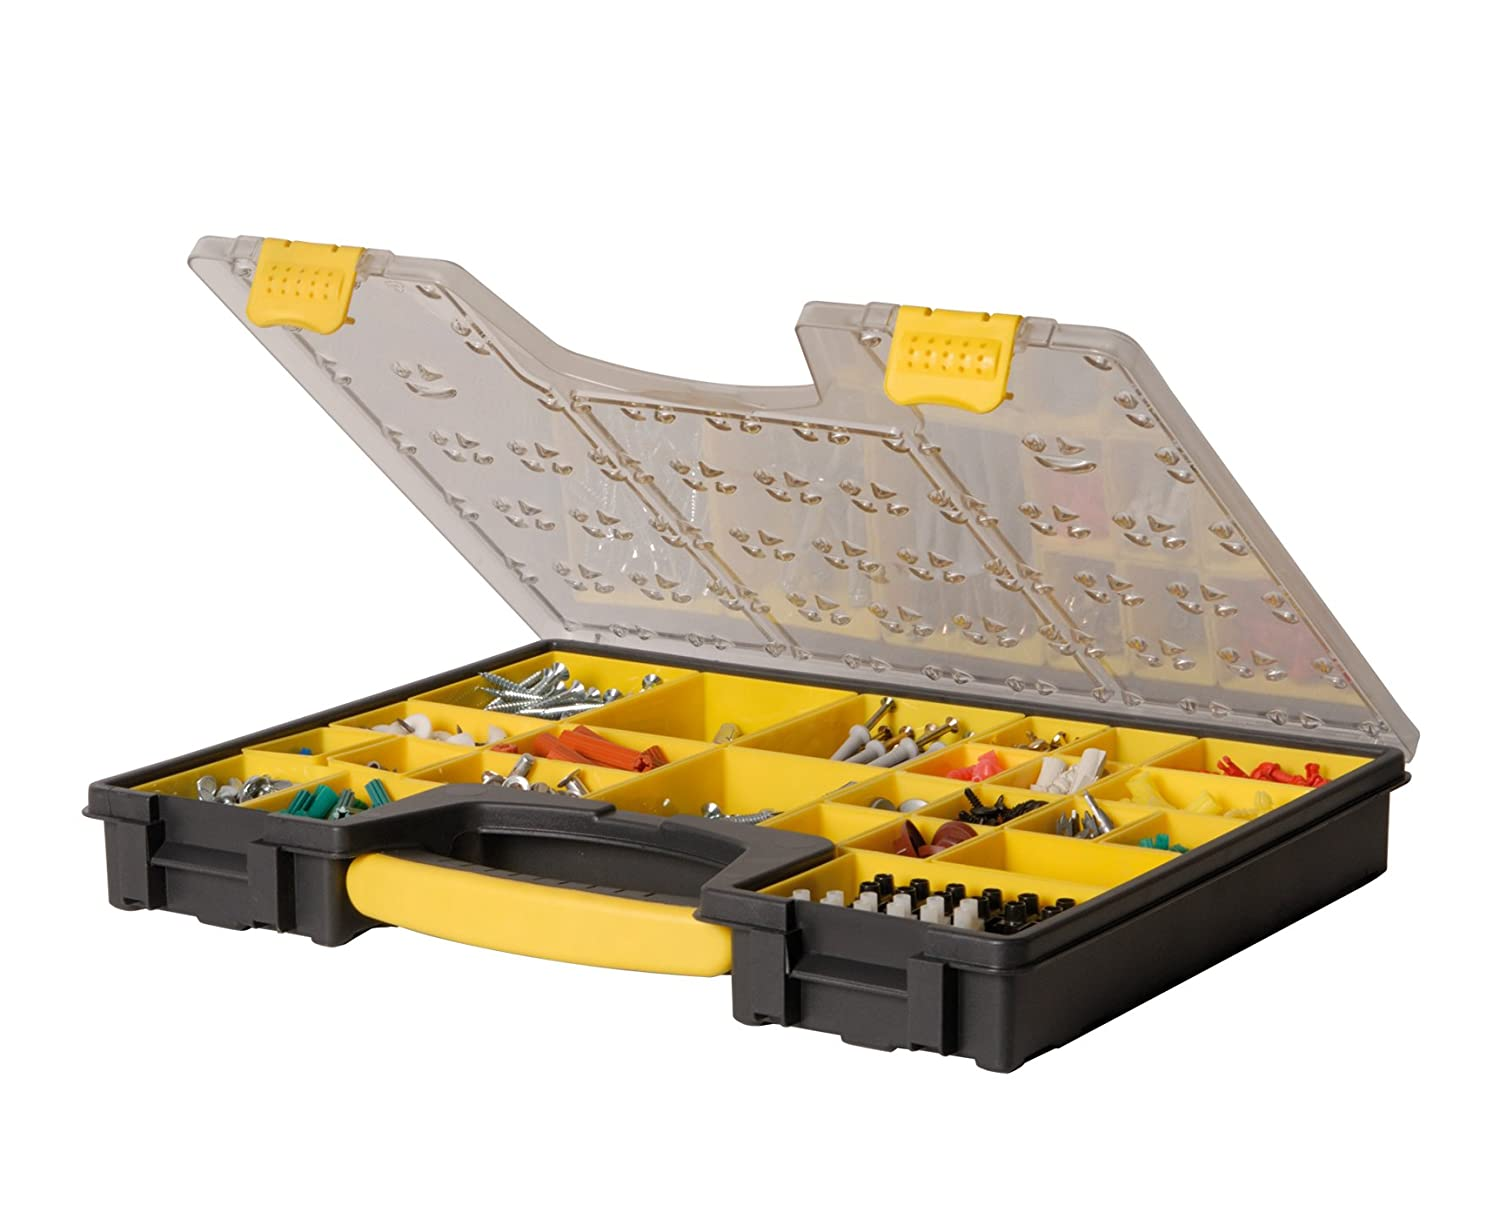 Stanley professionalOrganiser 1 92 748 [Energy Class A] 1-92-748 Compartment Boxes Fixings and Hardware Items Toolstorage and Workbenches